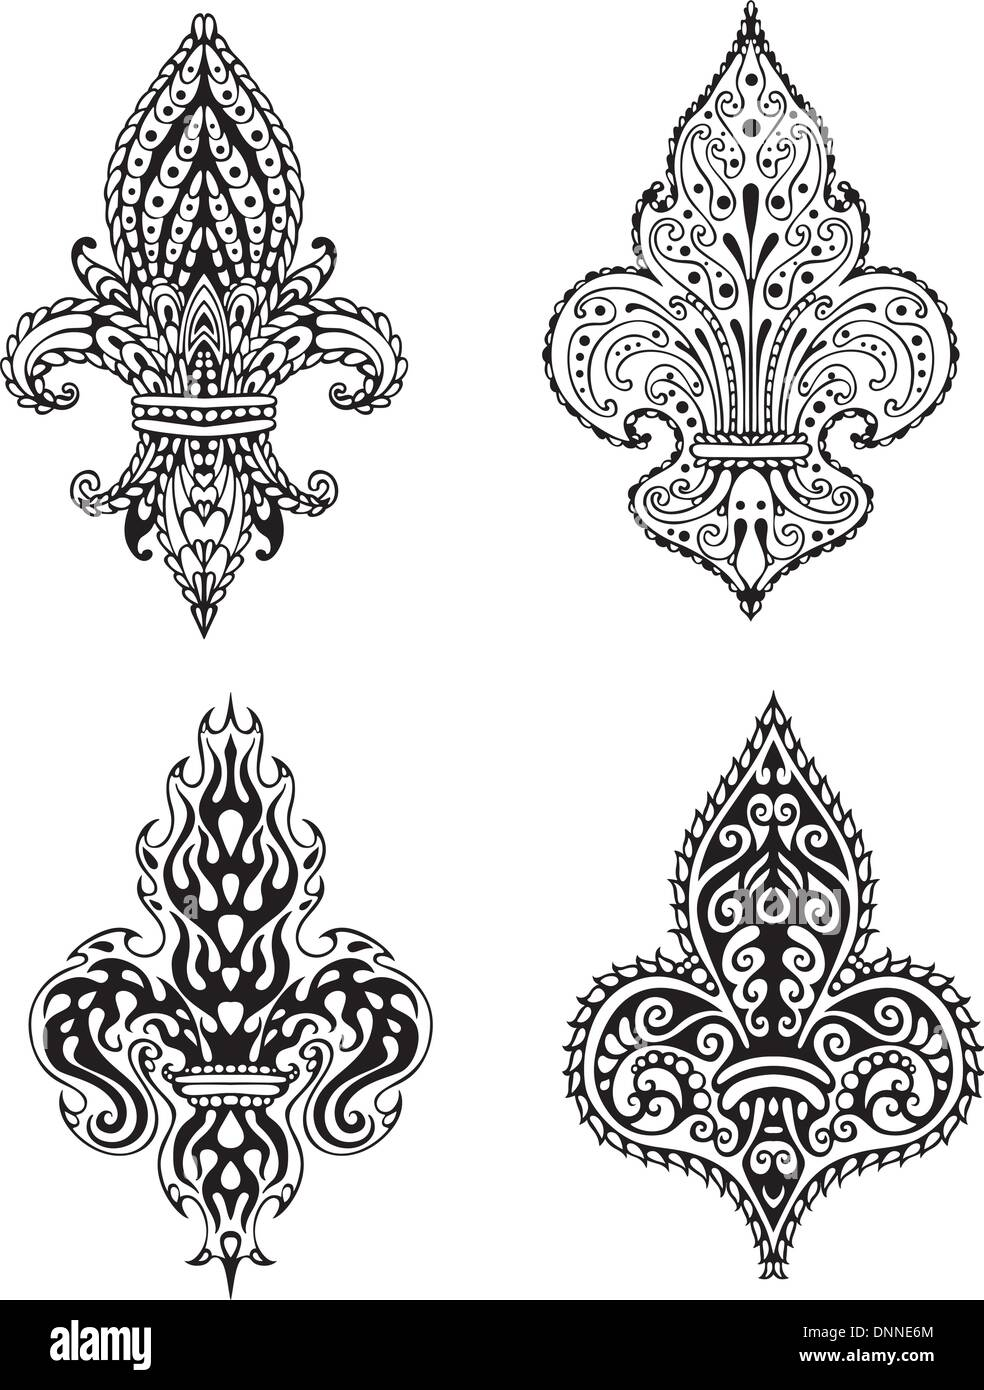 Fleur-de-lis (French Lilies of Bourbons). Set of black and white vector illustrations. - Stock Image